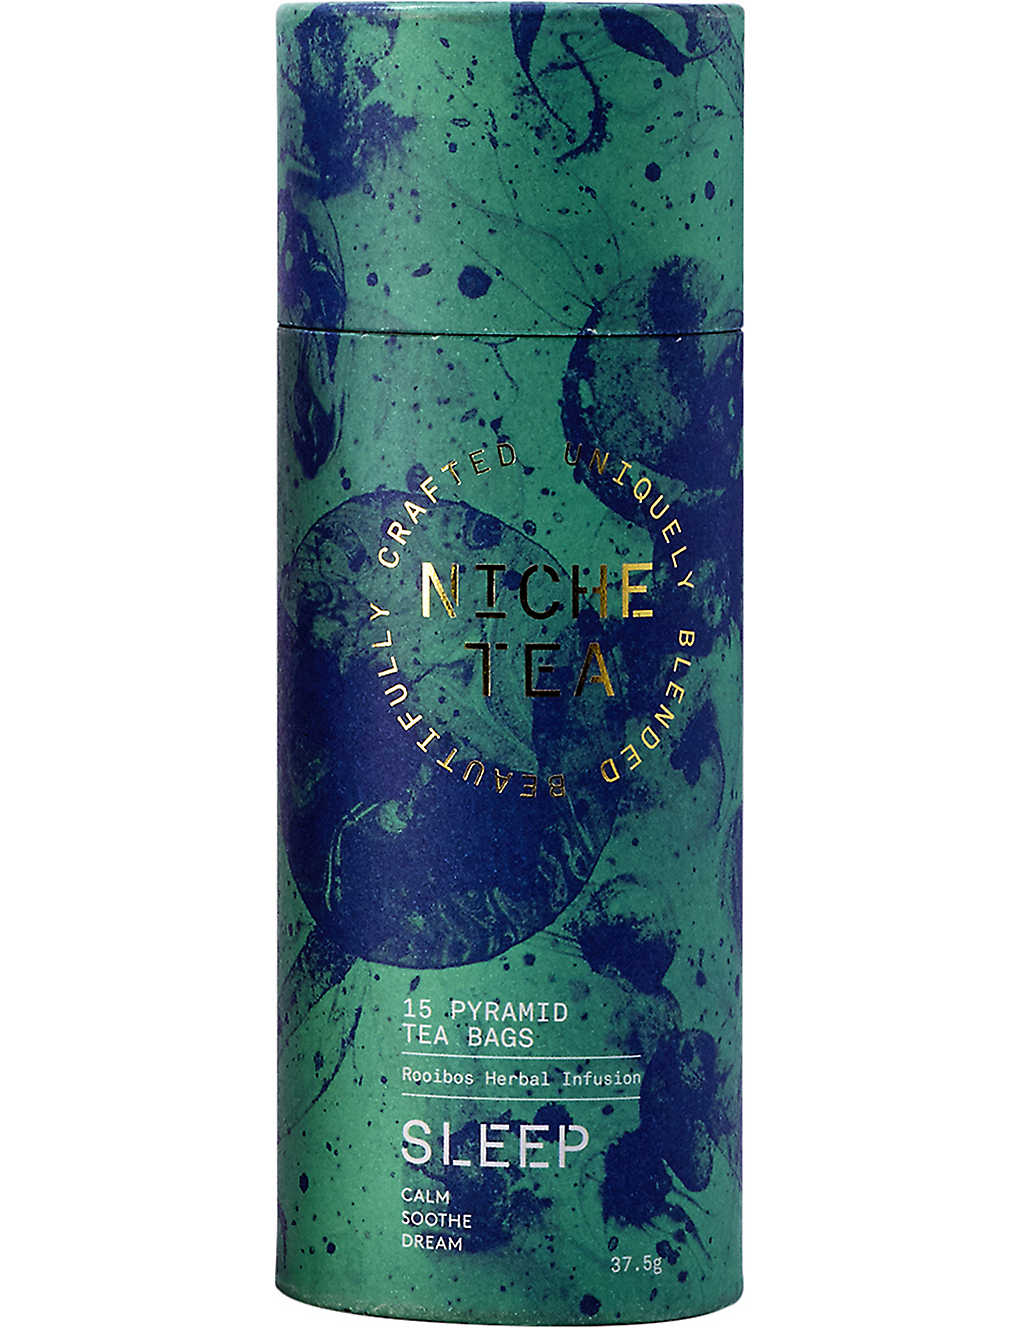 THE NICHE CO.: Sleep herbal tea box of 15